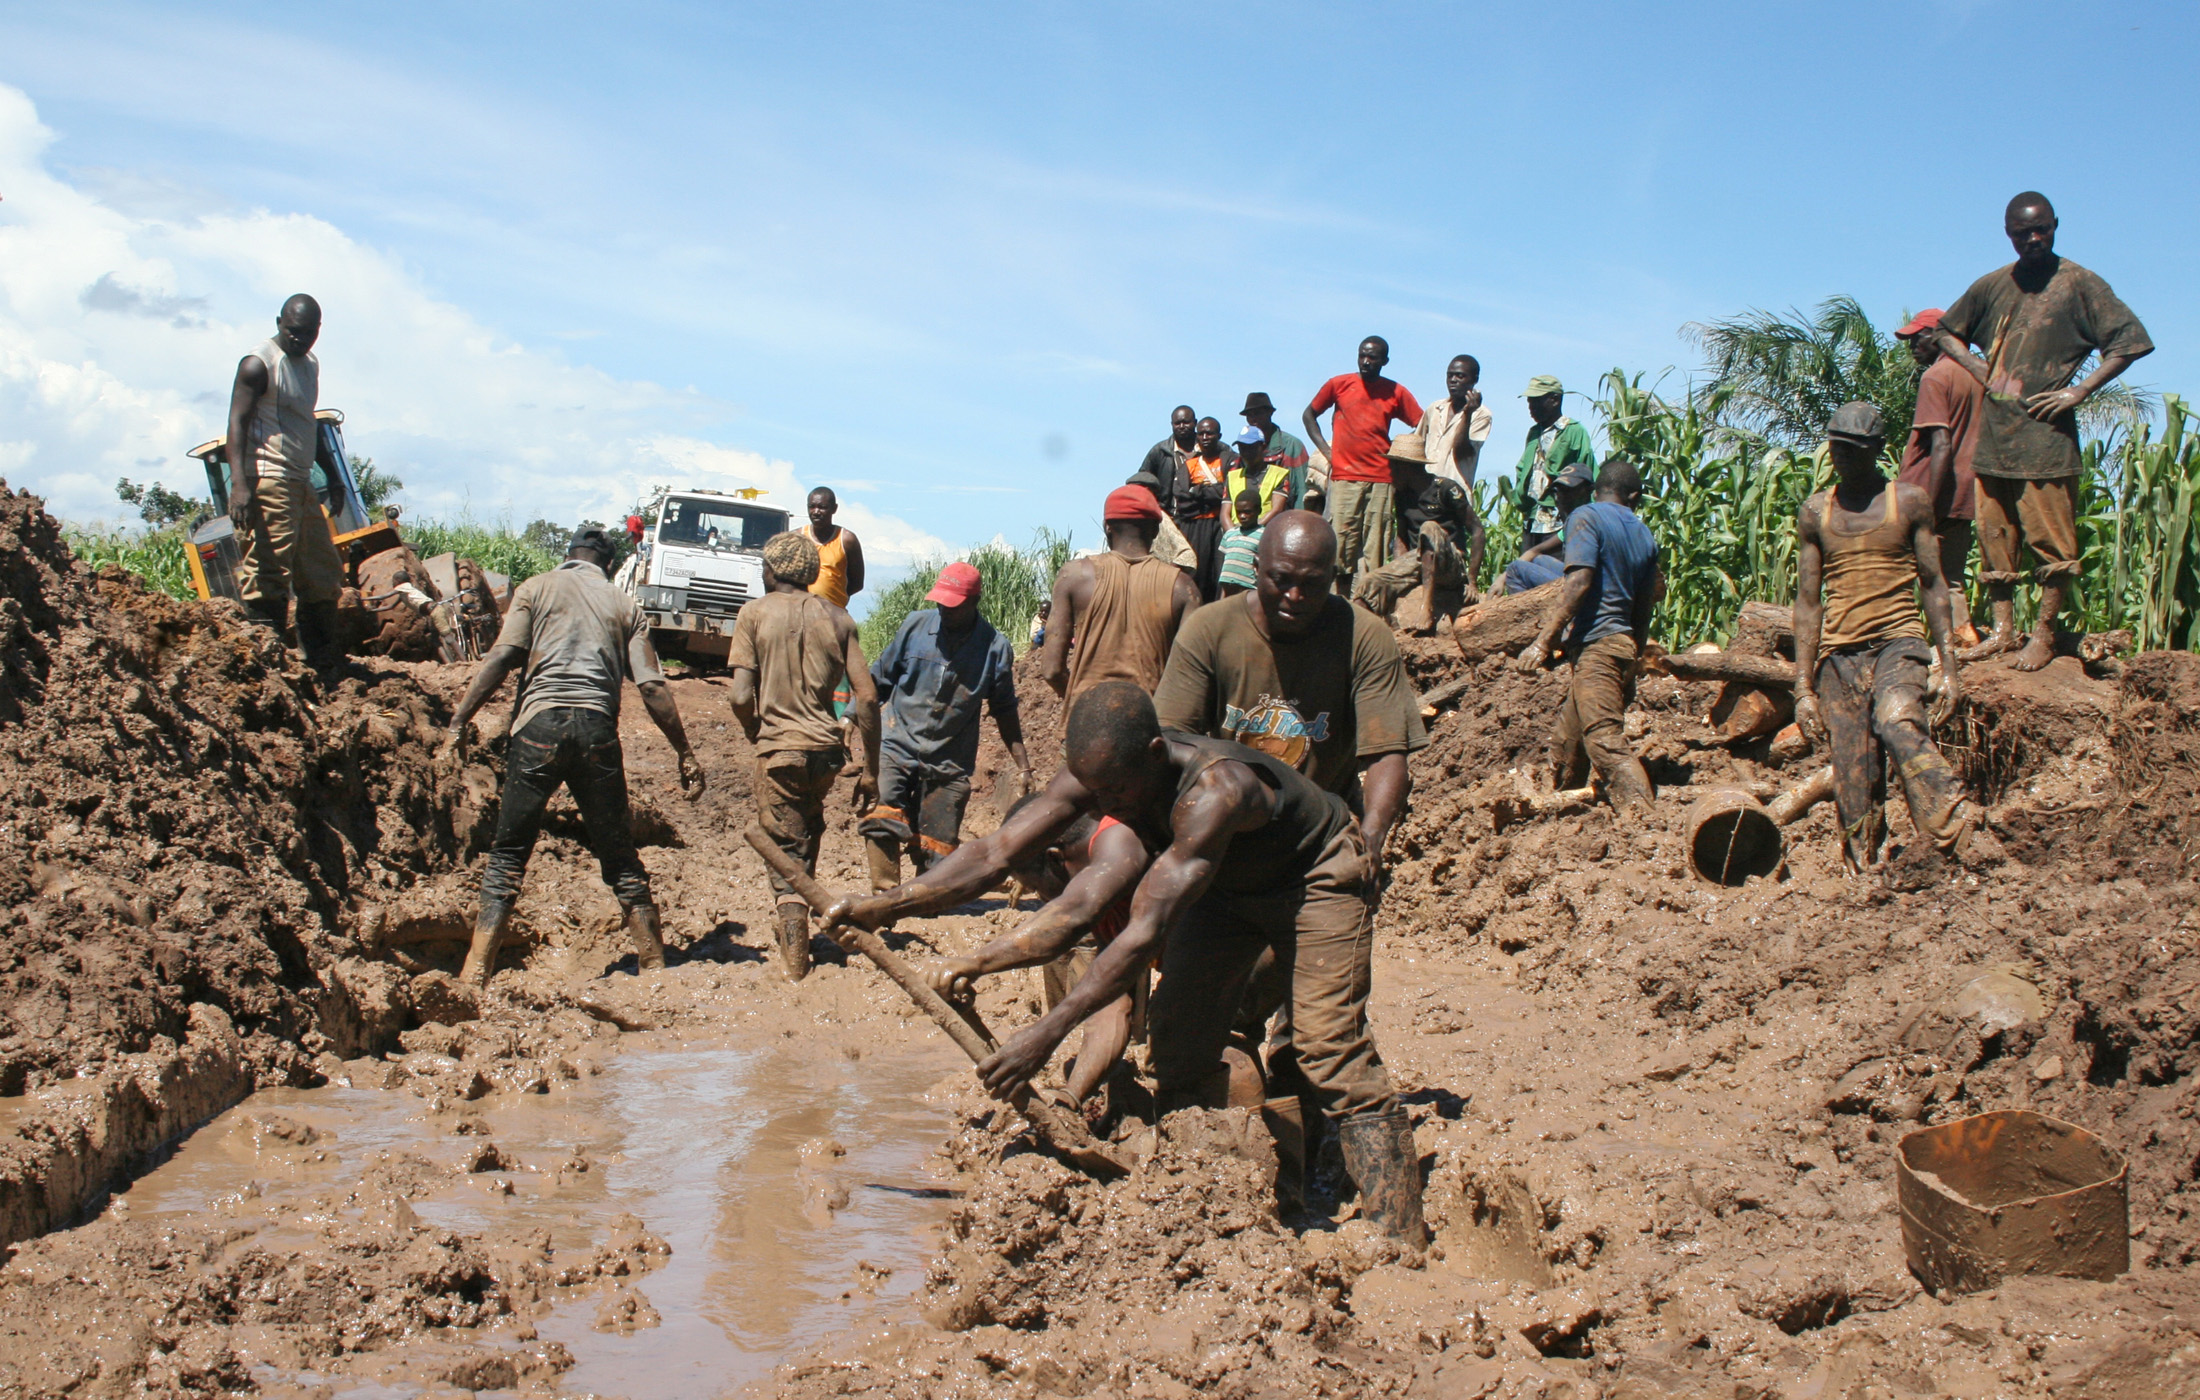 Truck crews work on a muddy road in an attempt to make it passable in DRC's Katanga province